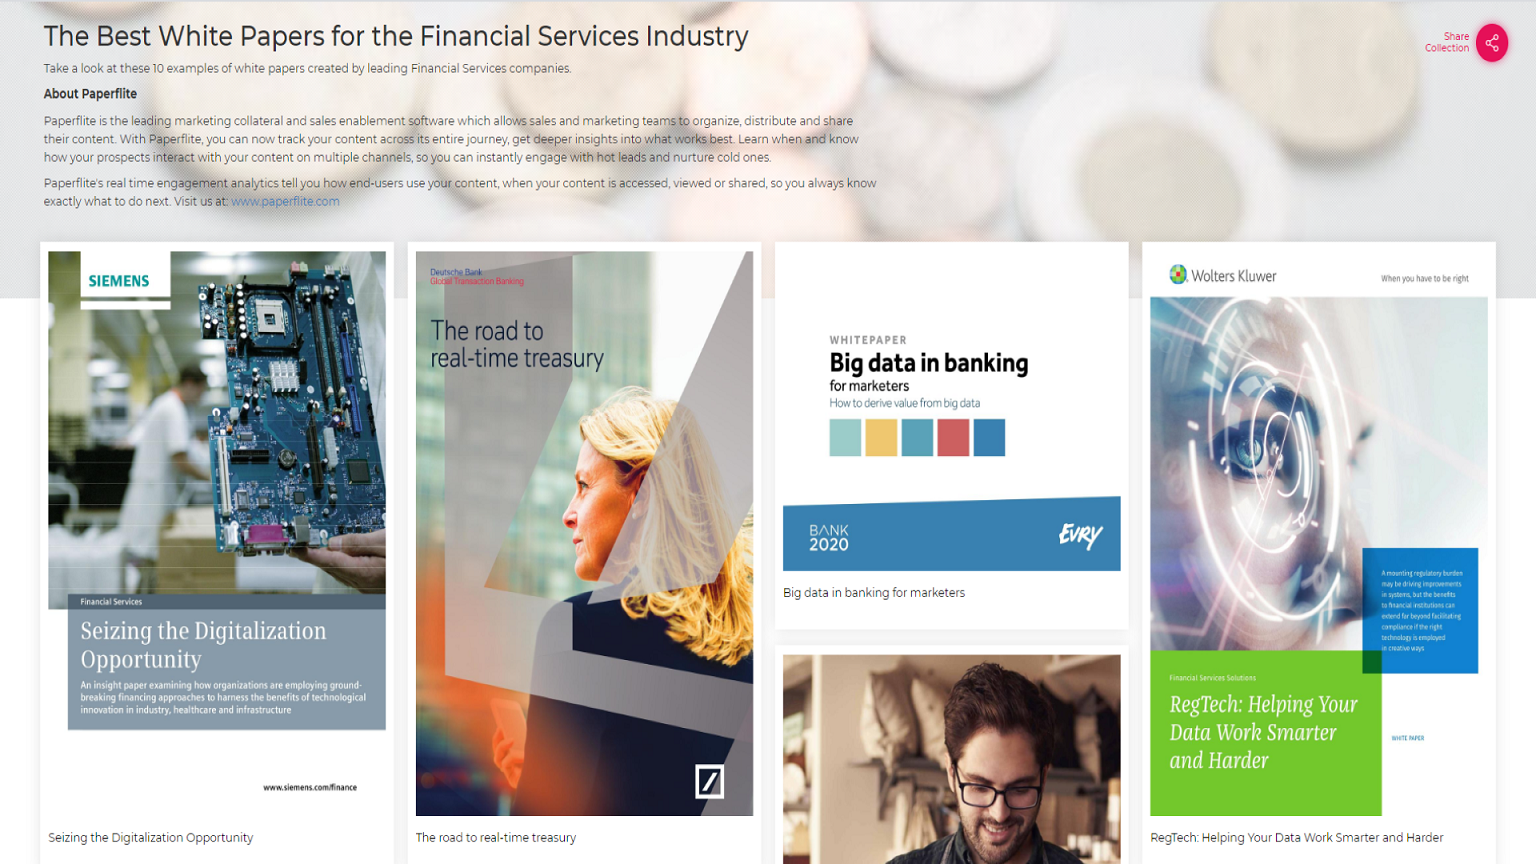 The Best White Papers for the Financial Services Industry